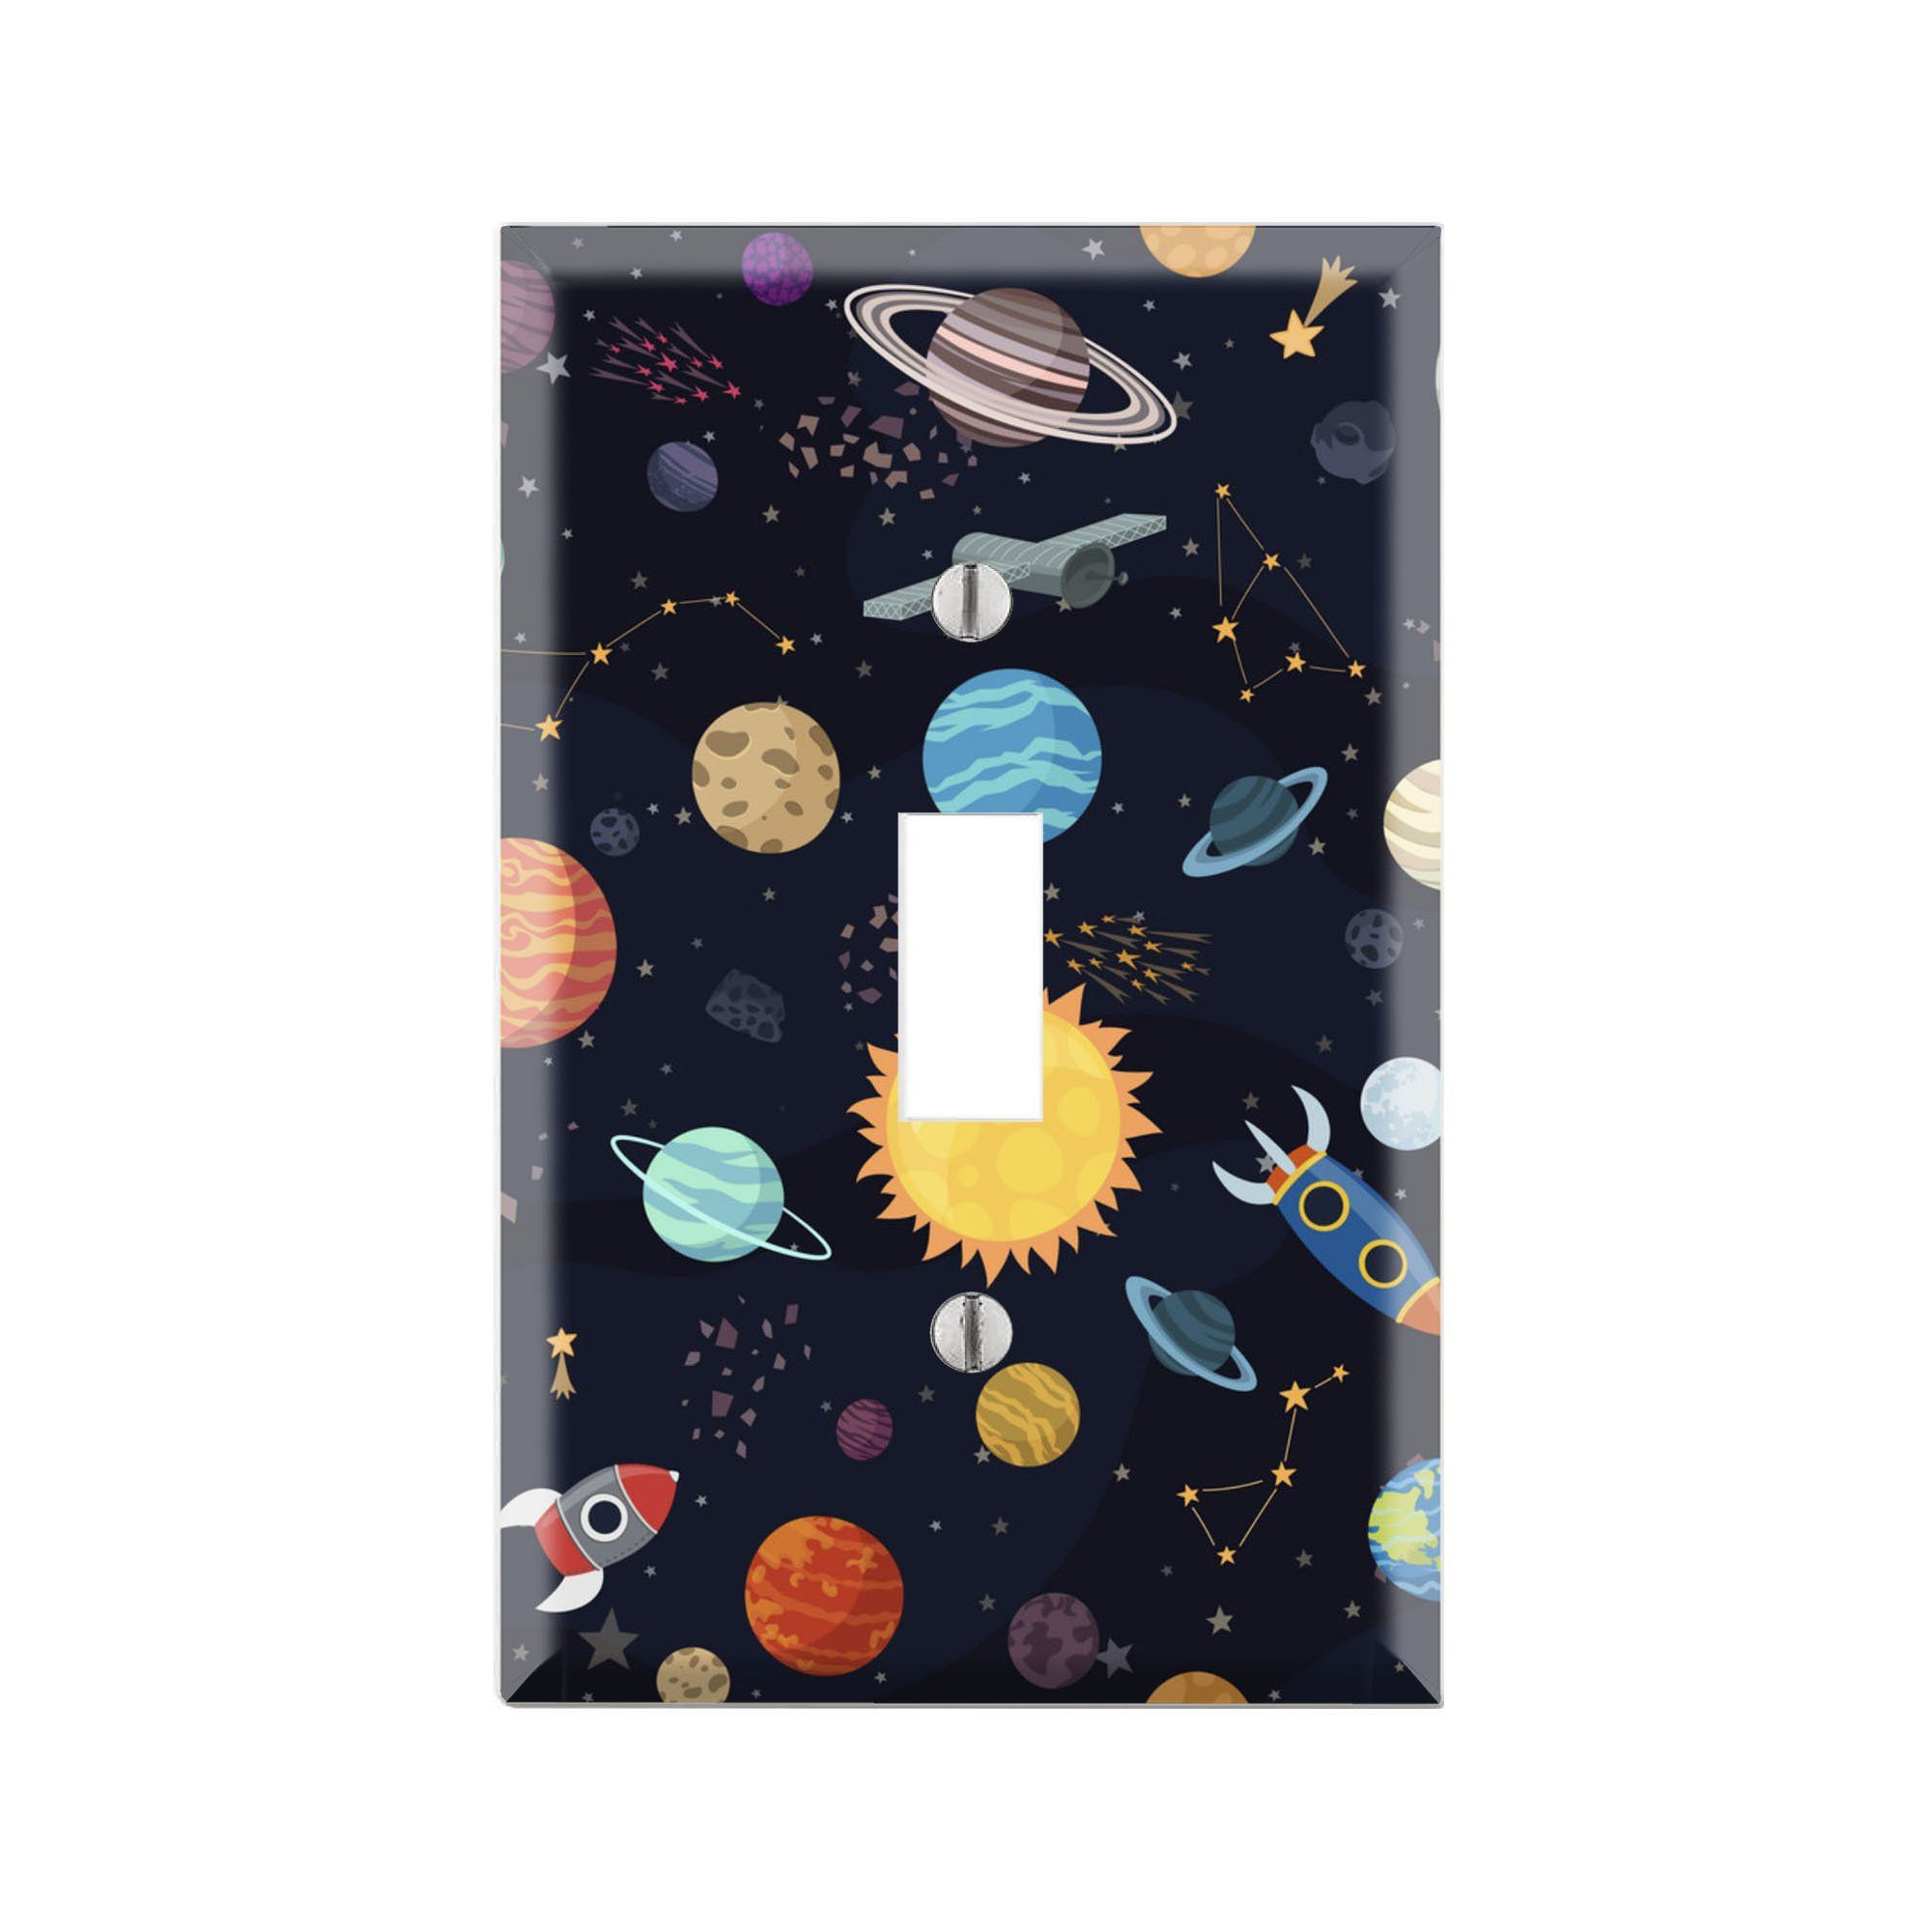 Solar System Wall Plate Cover Solar System Light Switch Etsy Light Switch Covers Decorative Light Switch Covers Light Switch Covers Diy